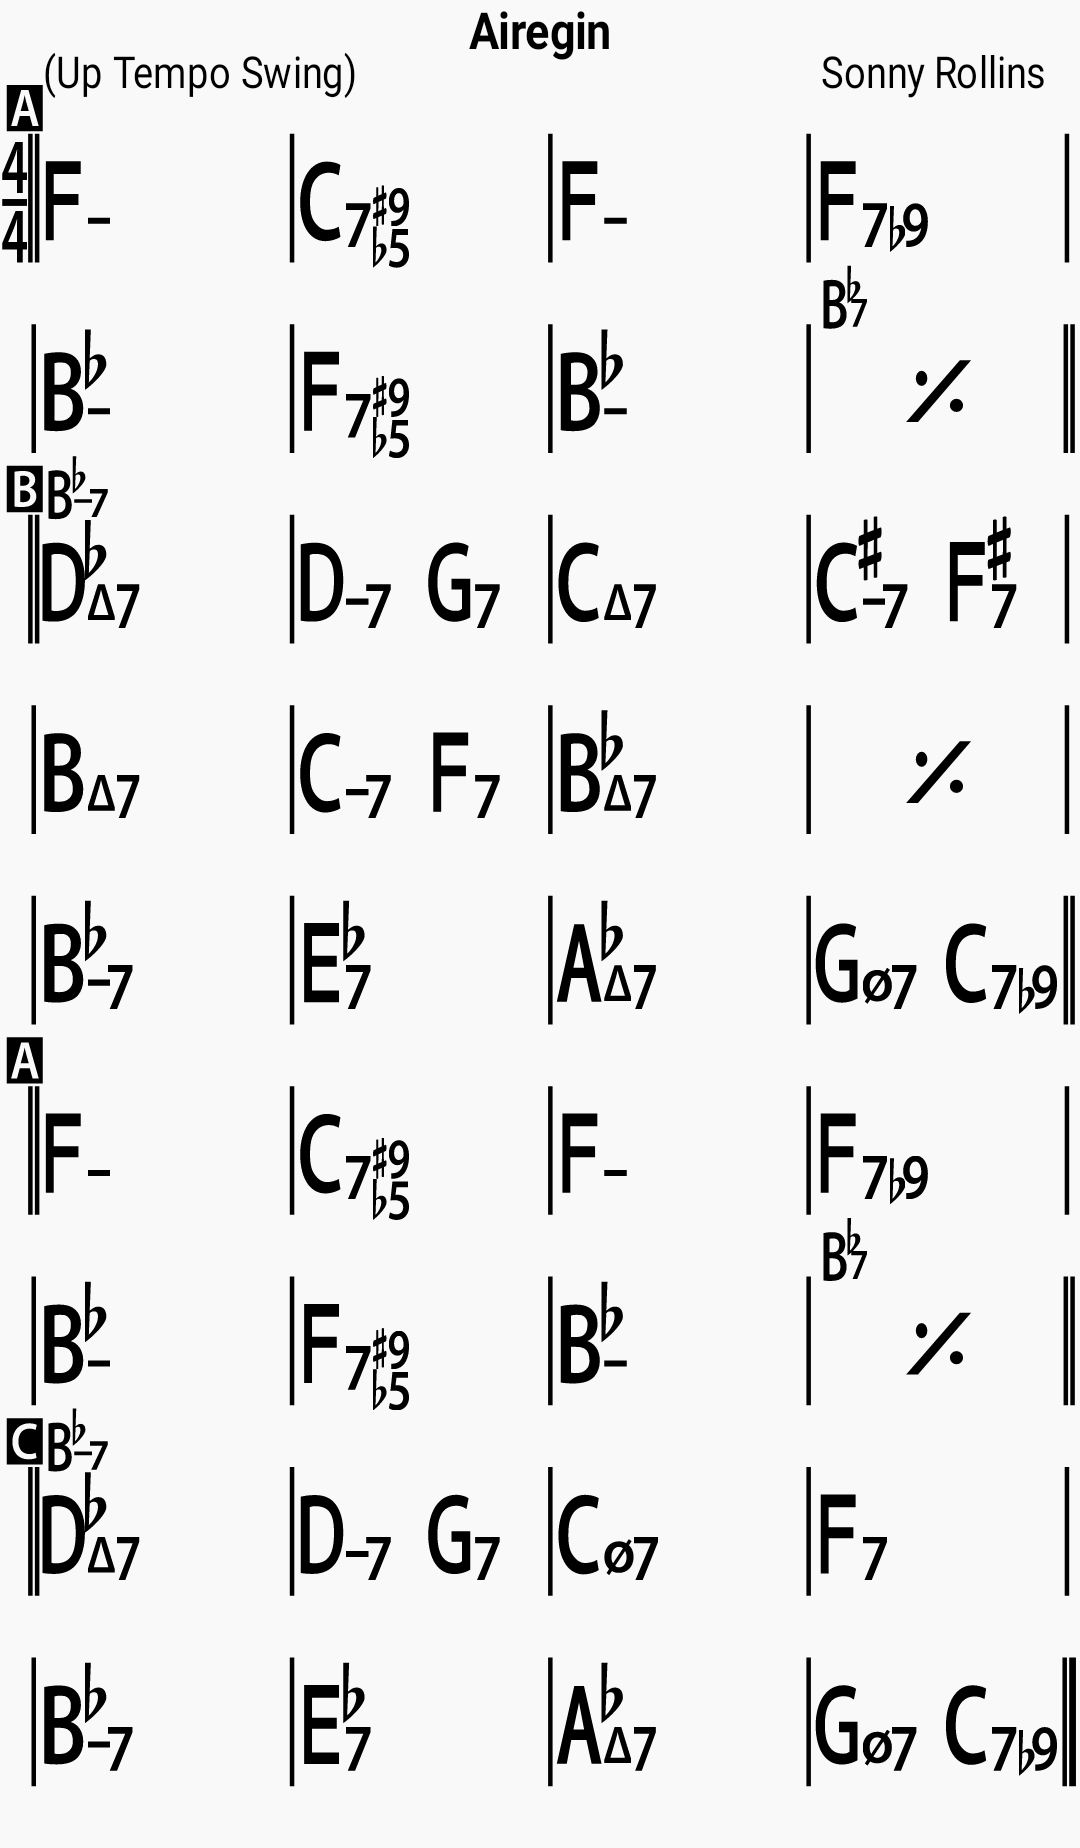 Chord chart for the jazz standard Airegin